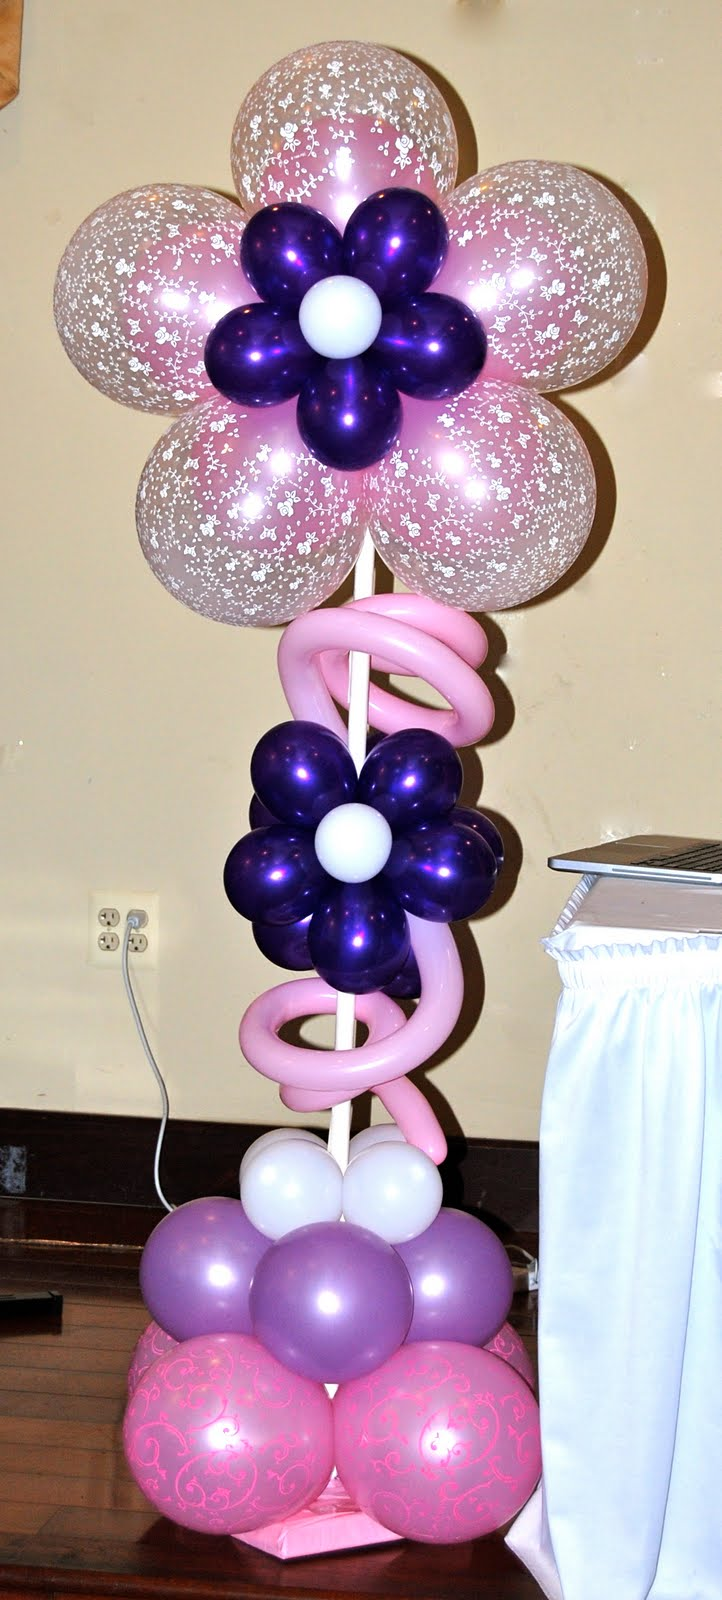 Korean 1st birthday dol decorations balloon decor for Balloon decoration ideas for 1st birthday